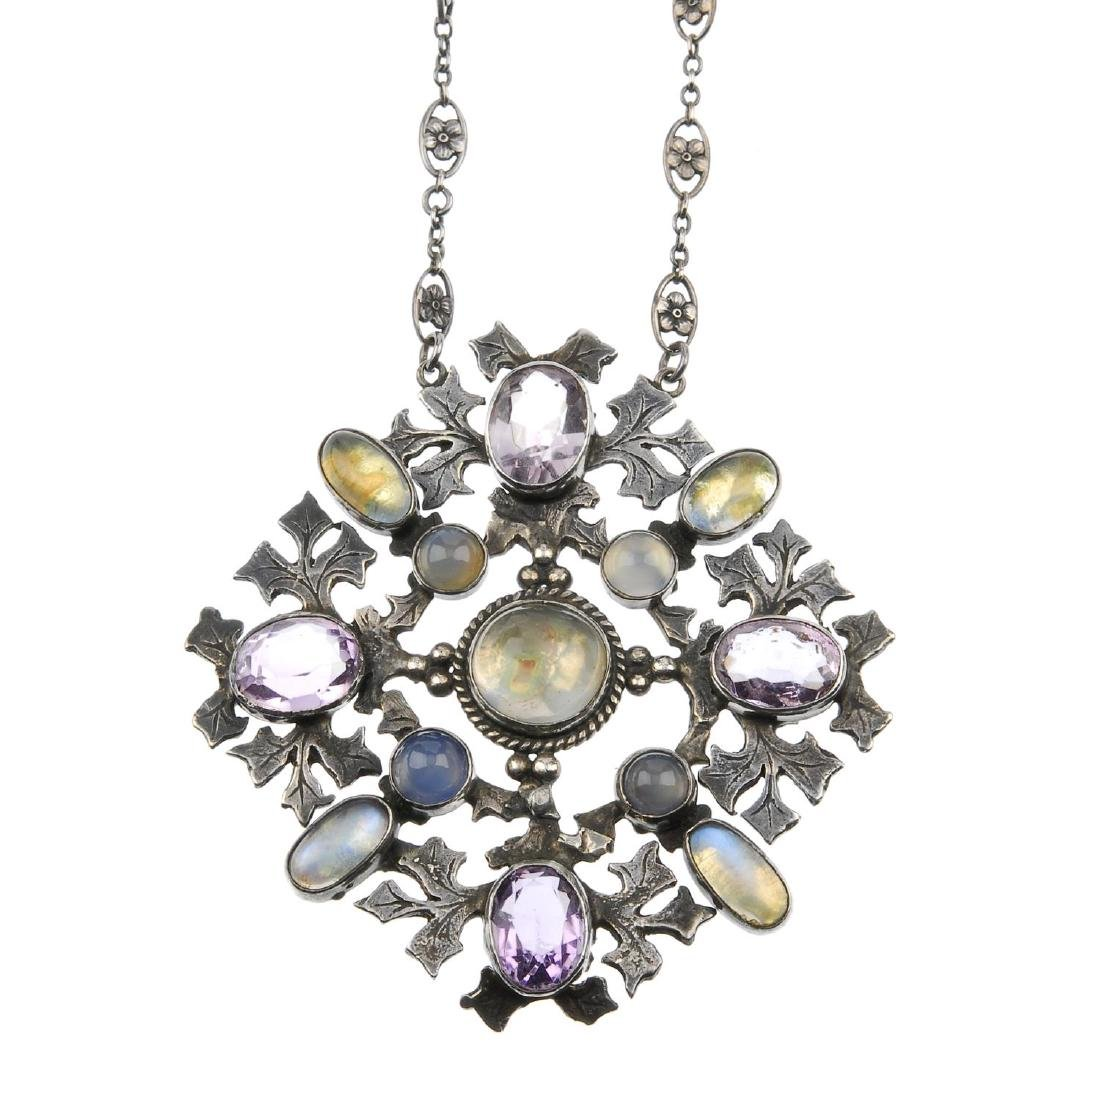 AMY SANDHEIM (attributed to) - a gem-set pendant.